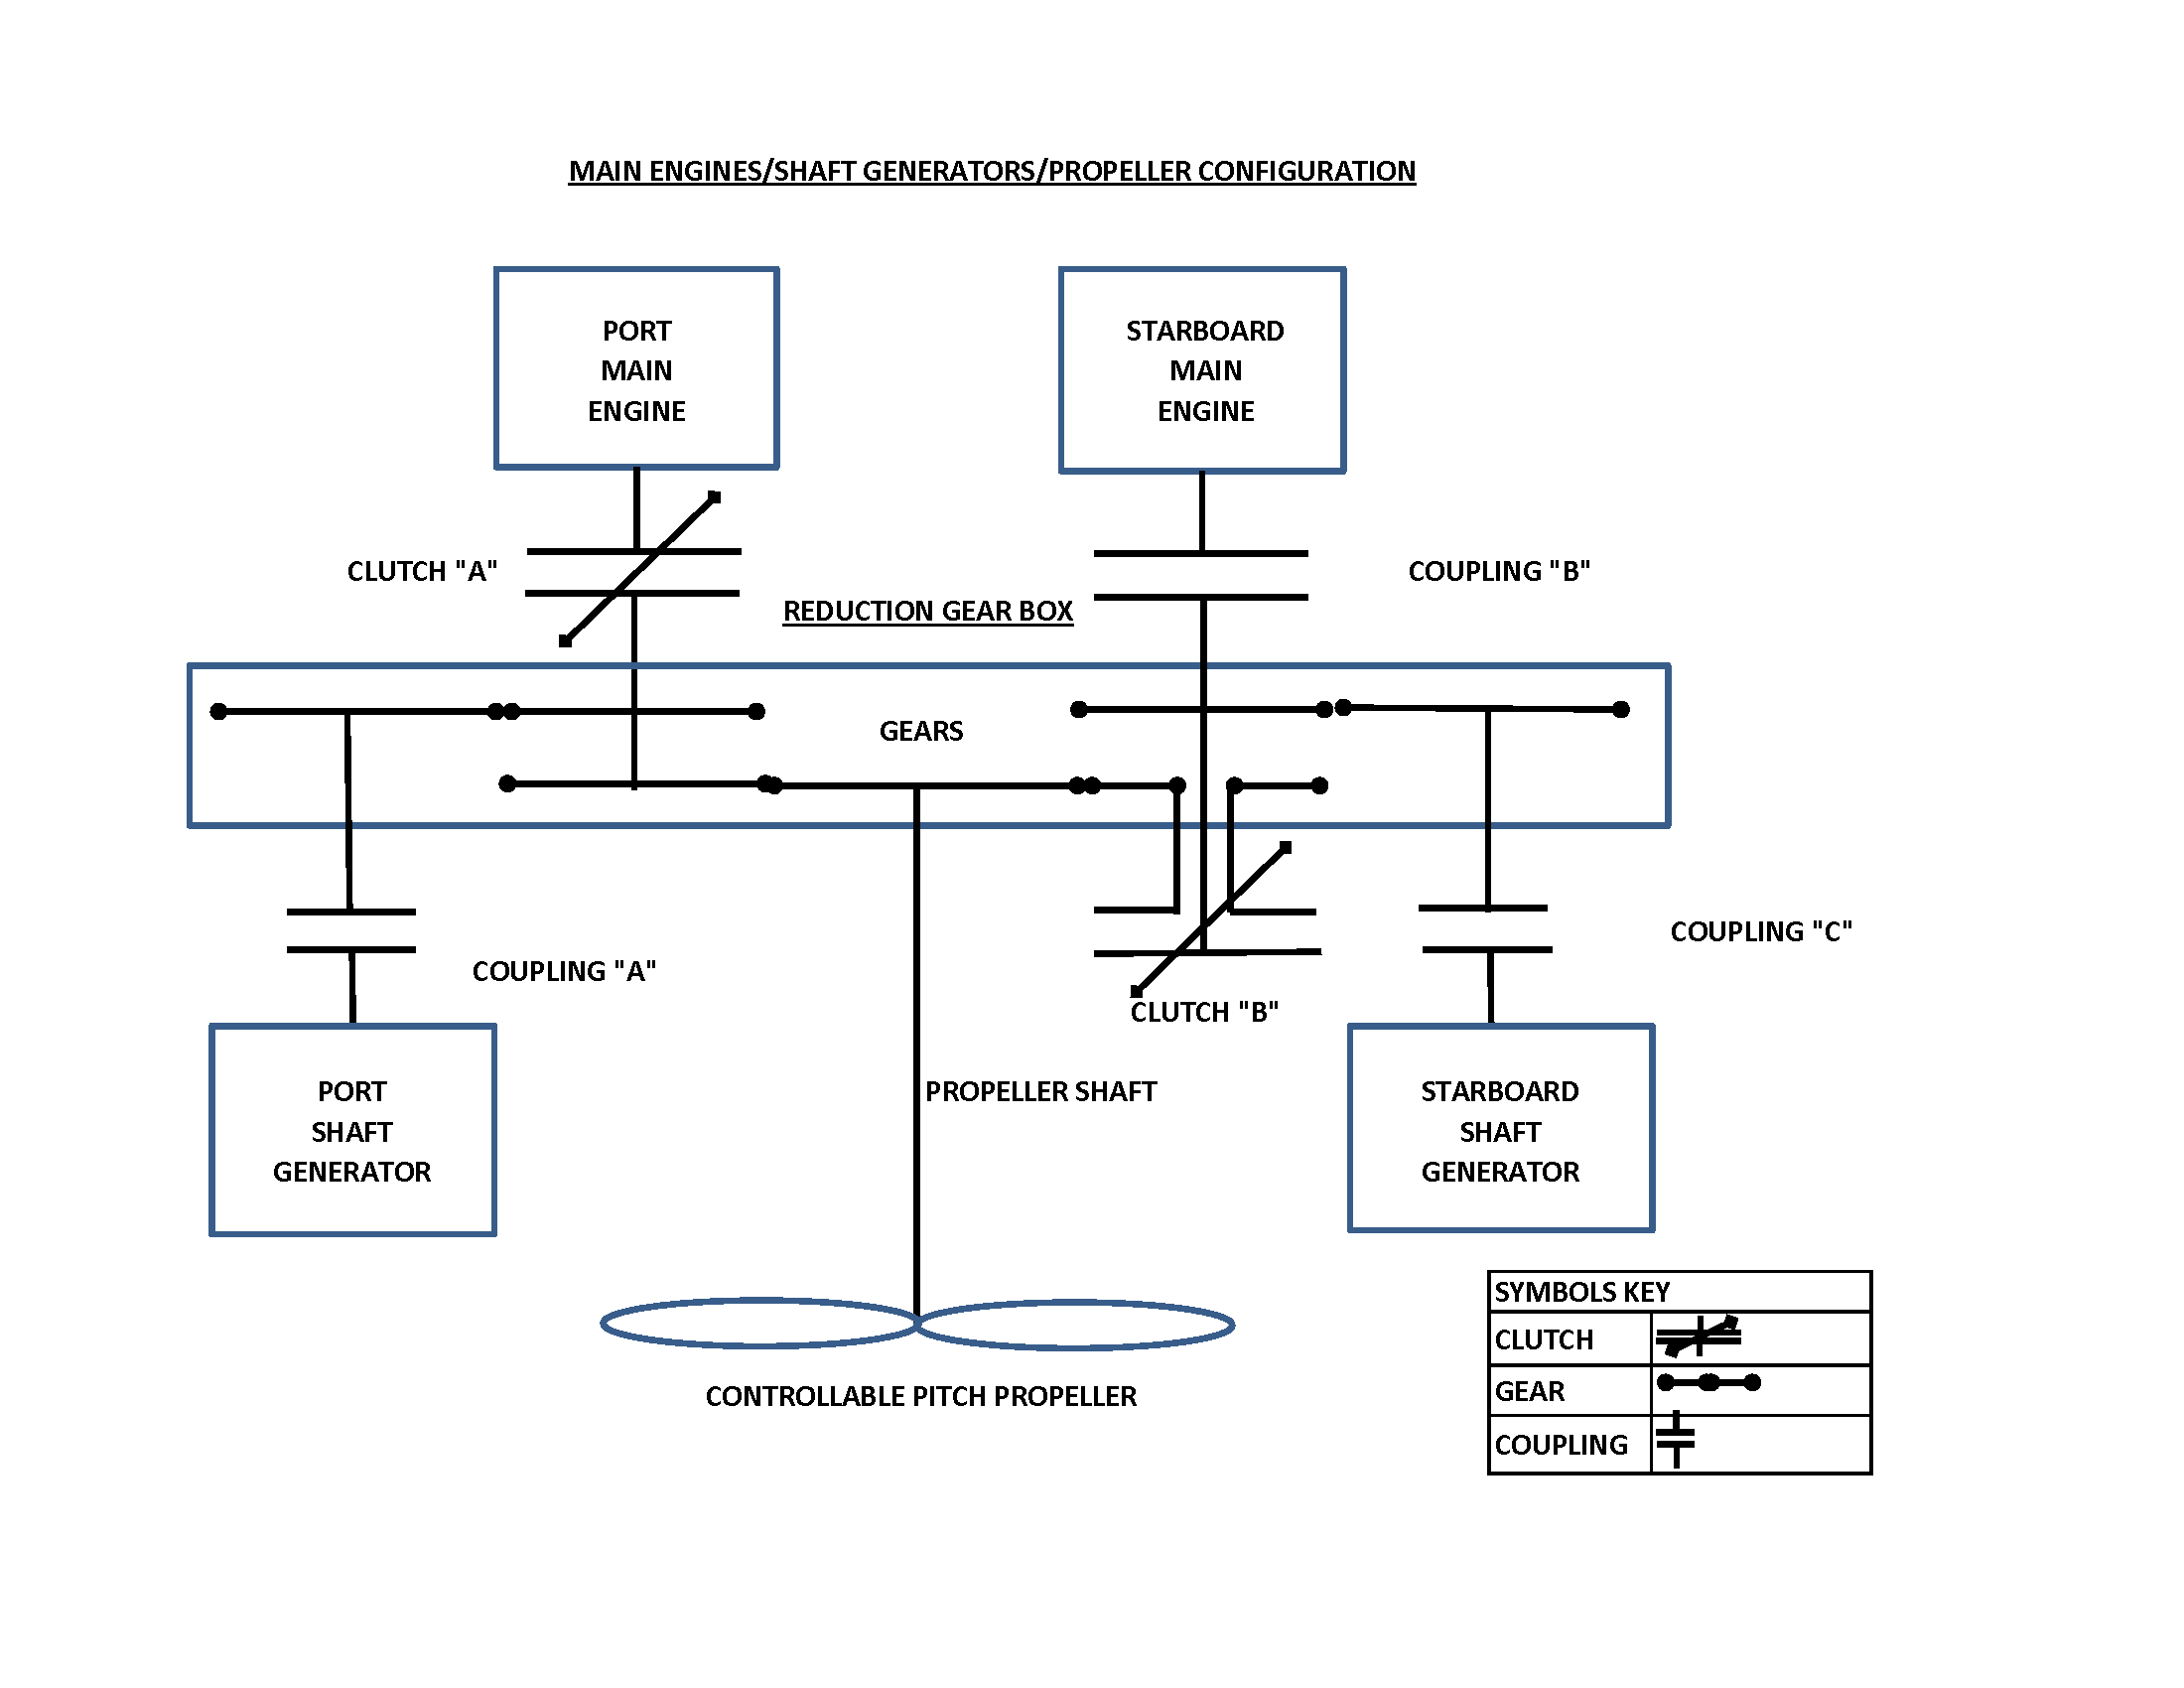 Transportation Safety Board Of Canada Marine Investigation Report How To Build Whistle Responder Circuit Diagram Arrangement The Main Engines Described In Description Vessel Section